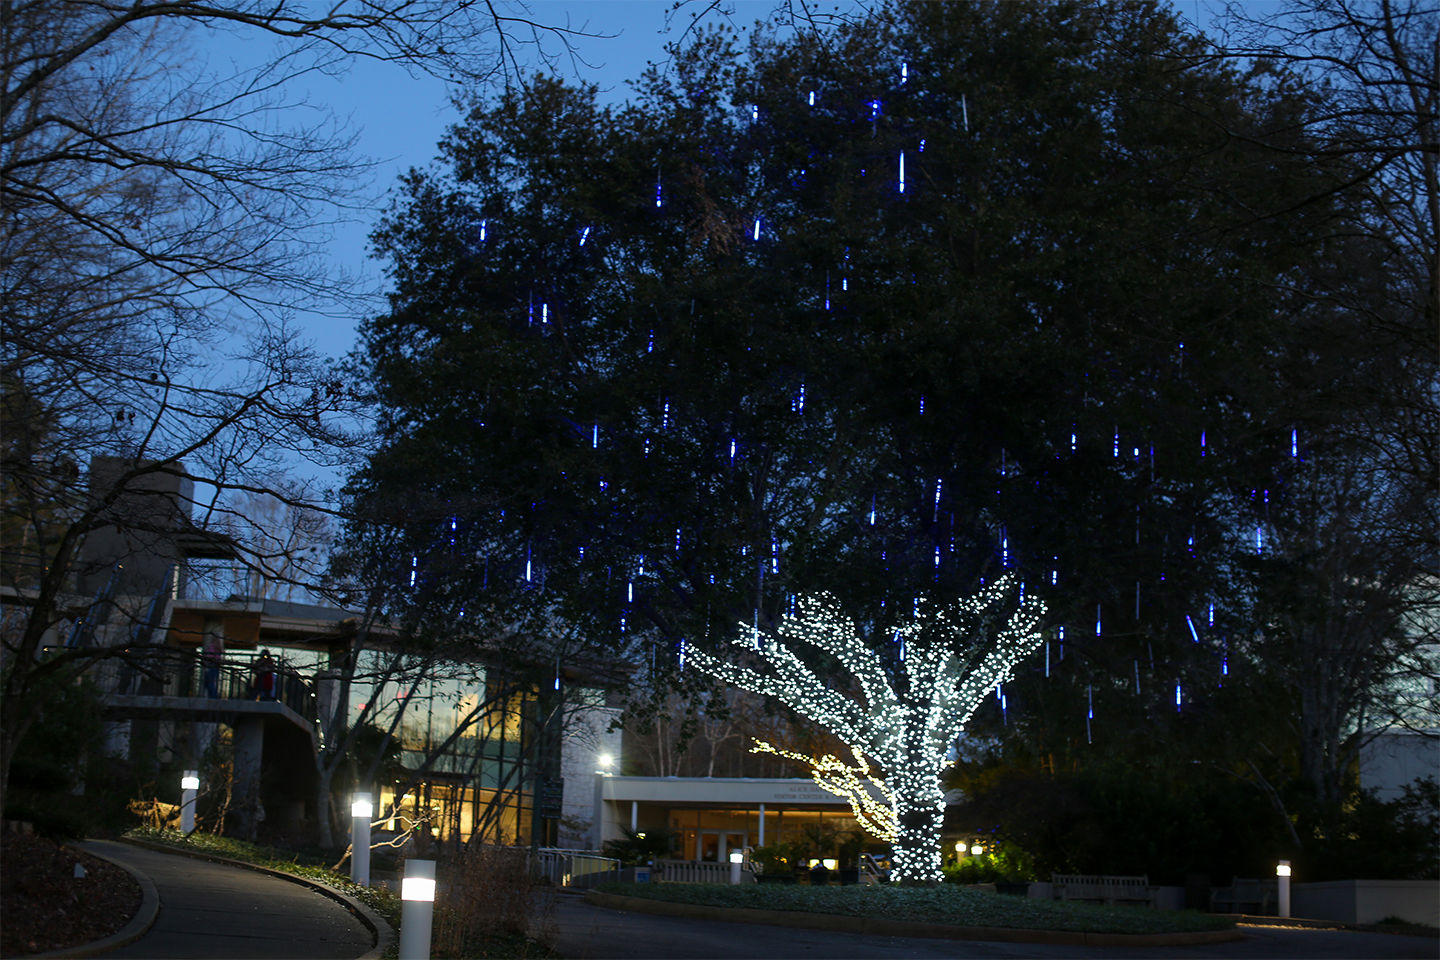 An illuminated tree at night in the State Botanical Garden of Georgia.